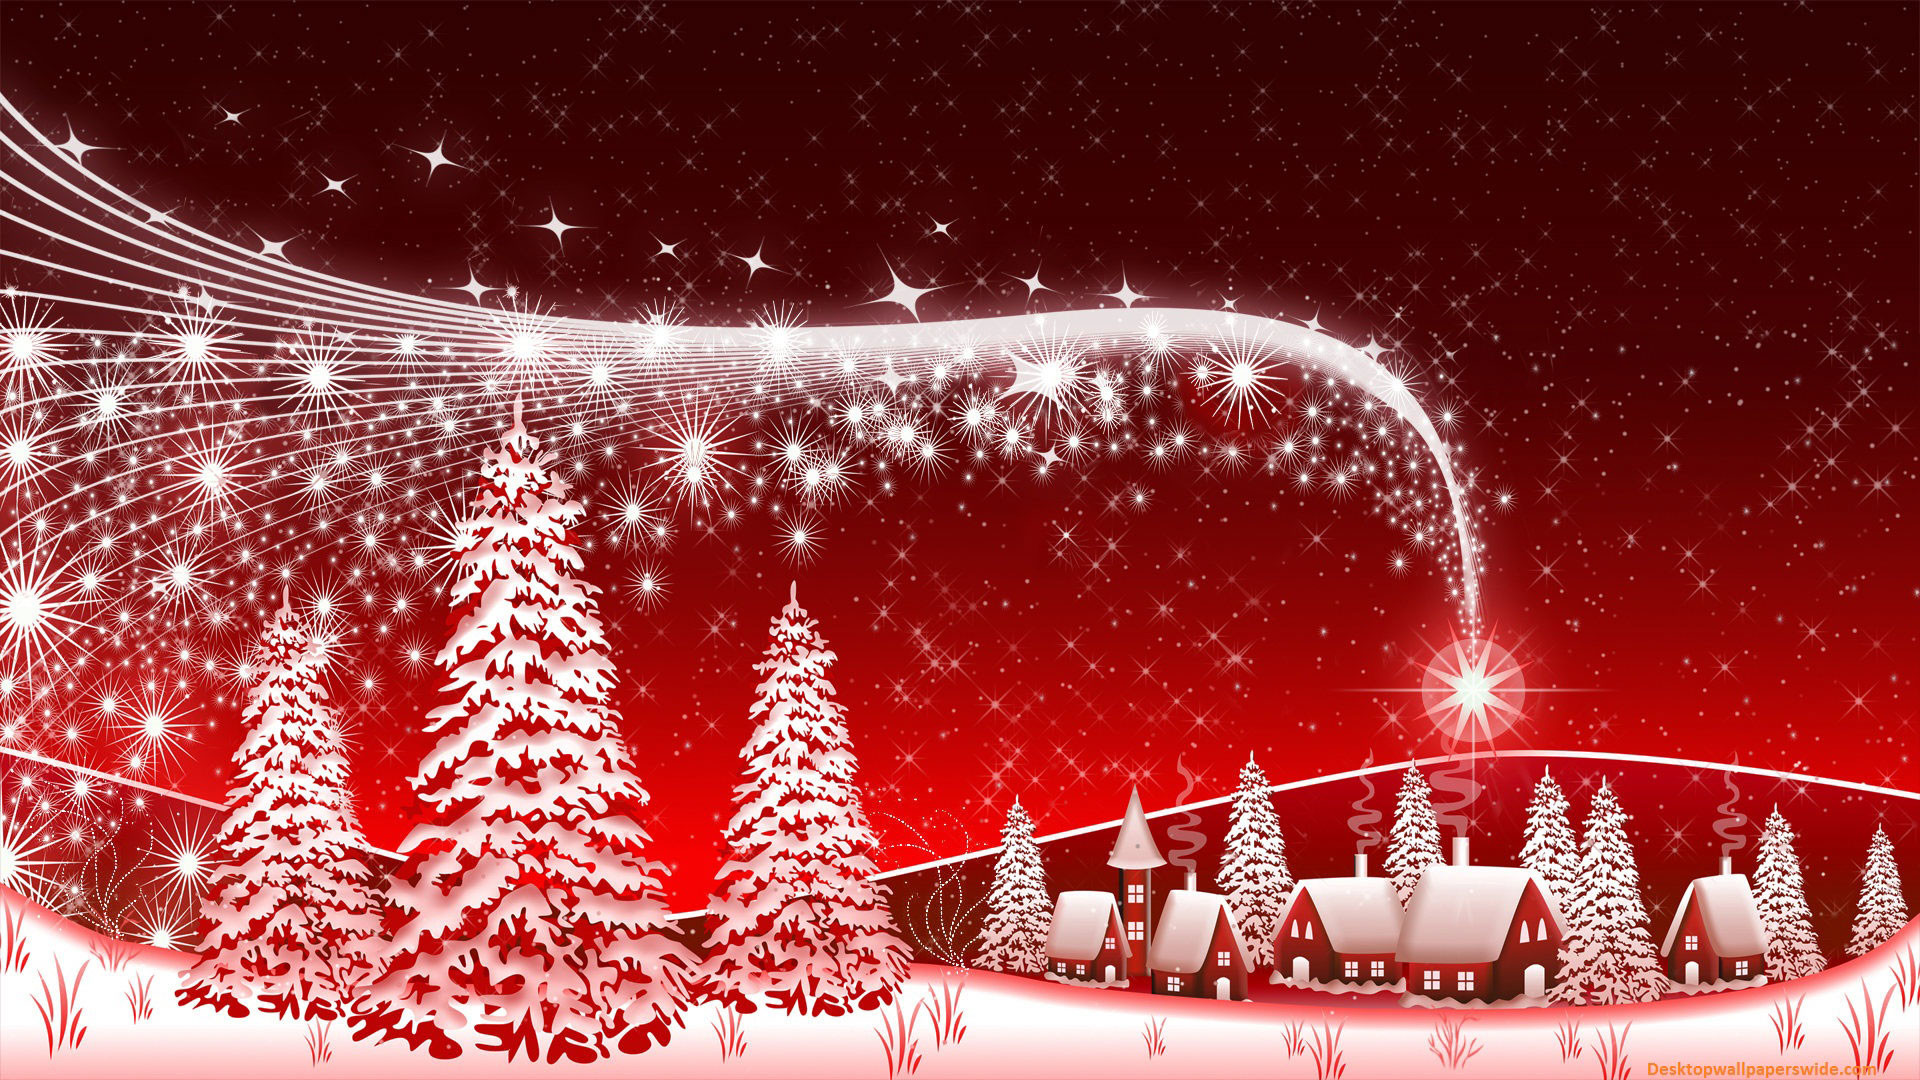 1920x1080 Hd Pics Photos Christmas Red Glitter Desktop Background Wallpaper Download Tinsel